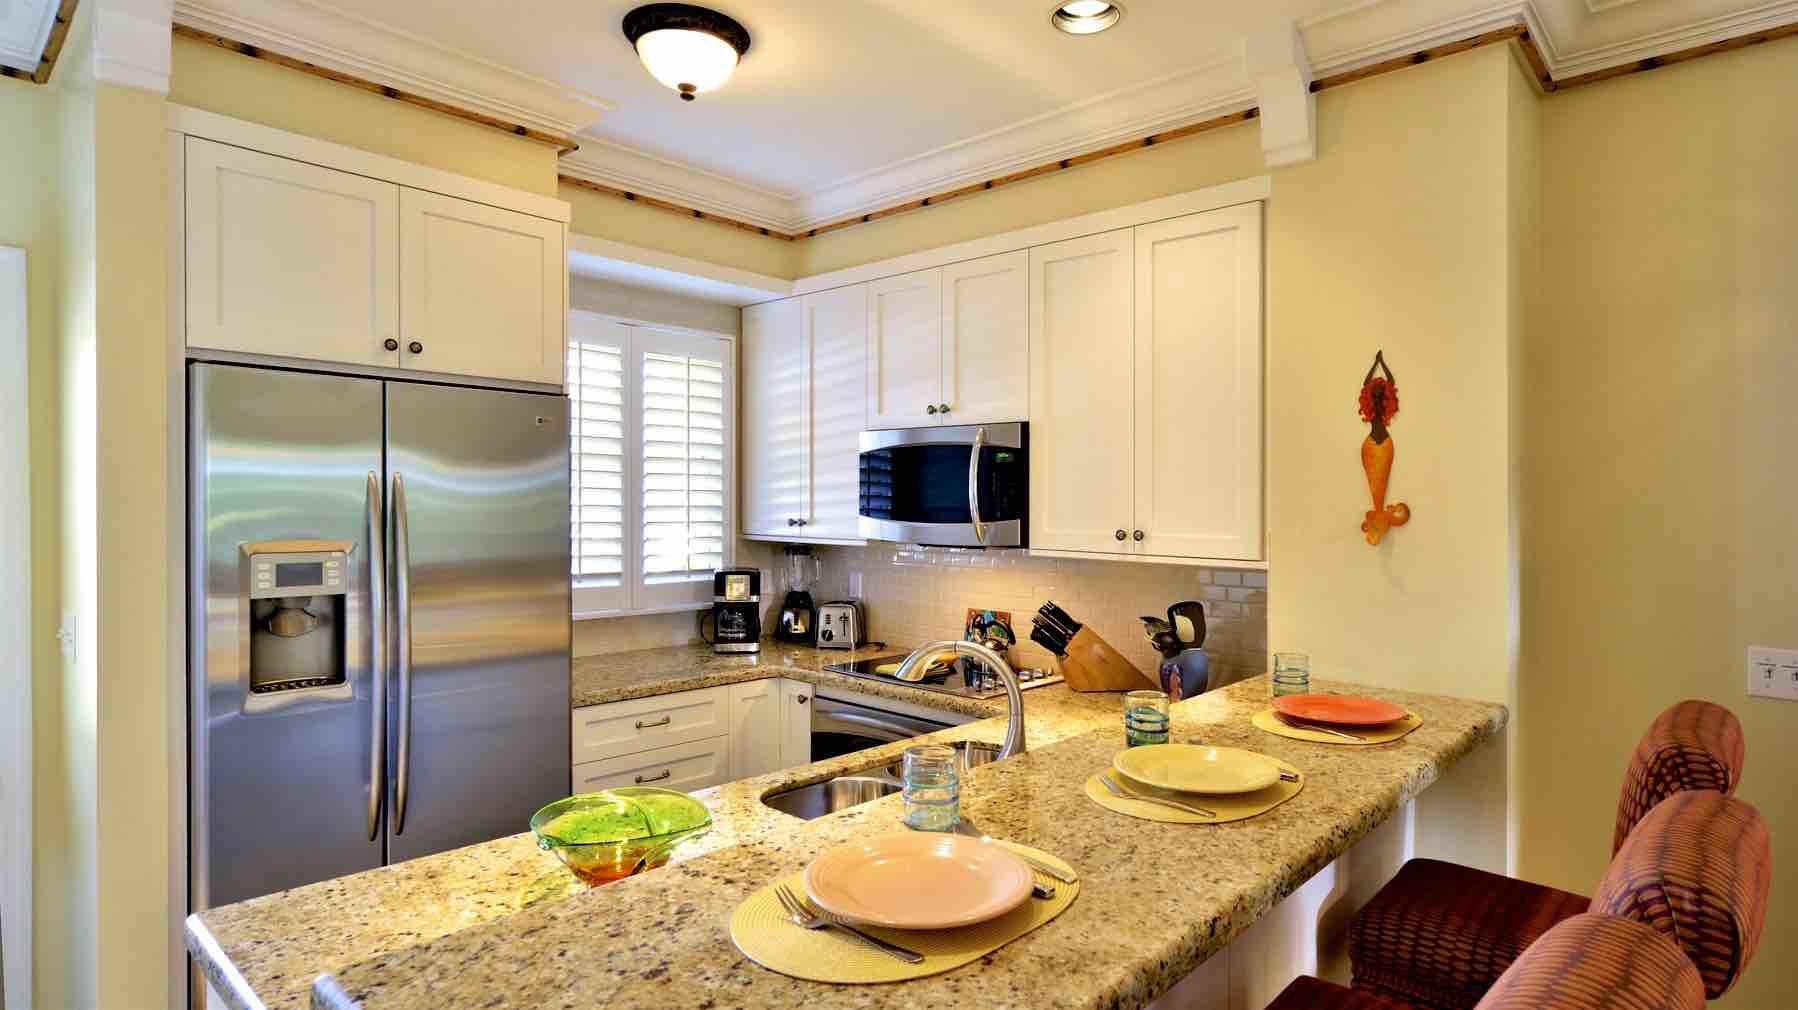 The kitchen has top of the line appliances. the bar will accommodate 3 persons...